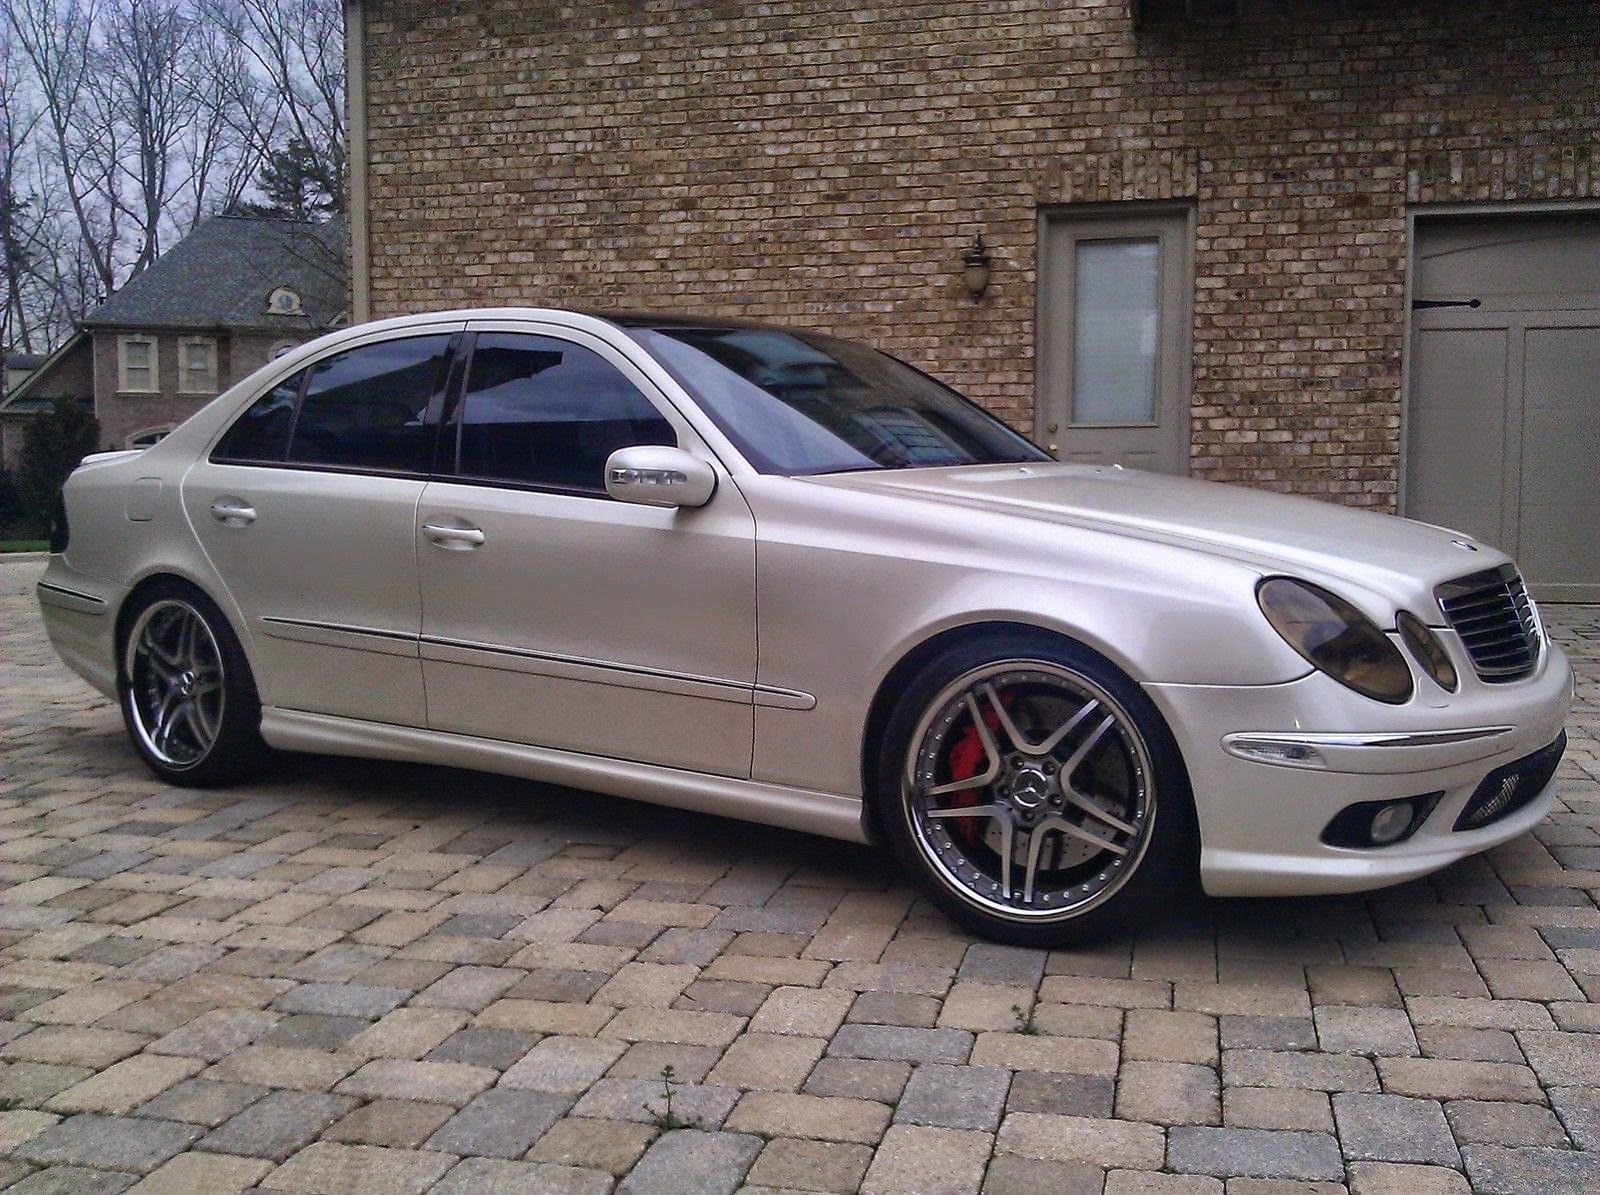 mercedes benz w211 e55 amg on autobahn wheels benztuning. Black Bedroom Furniture Sets. Home Design Ideas